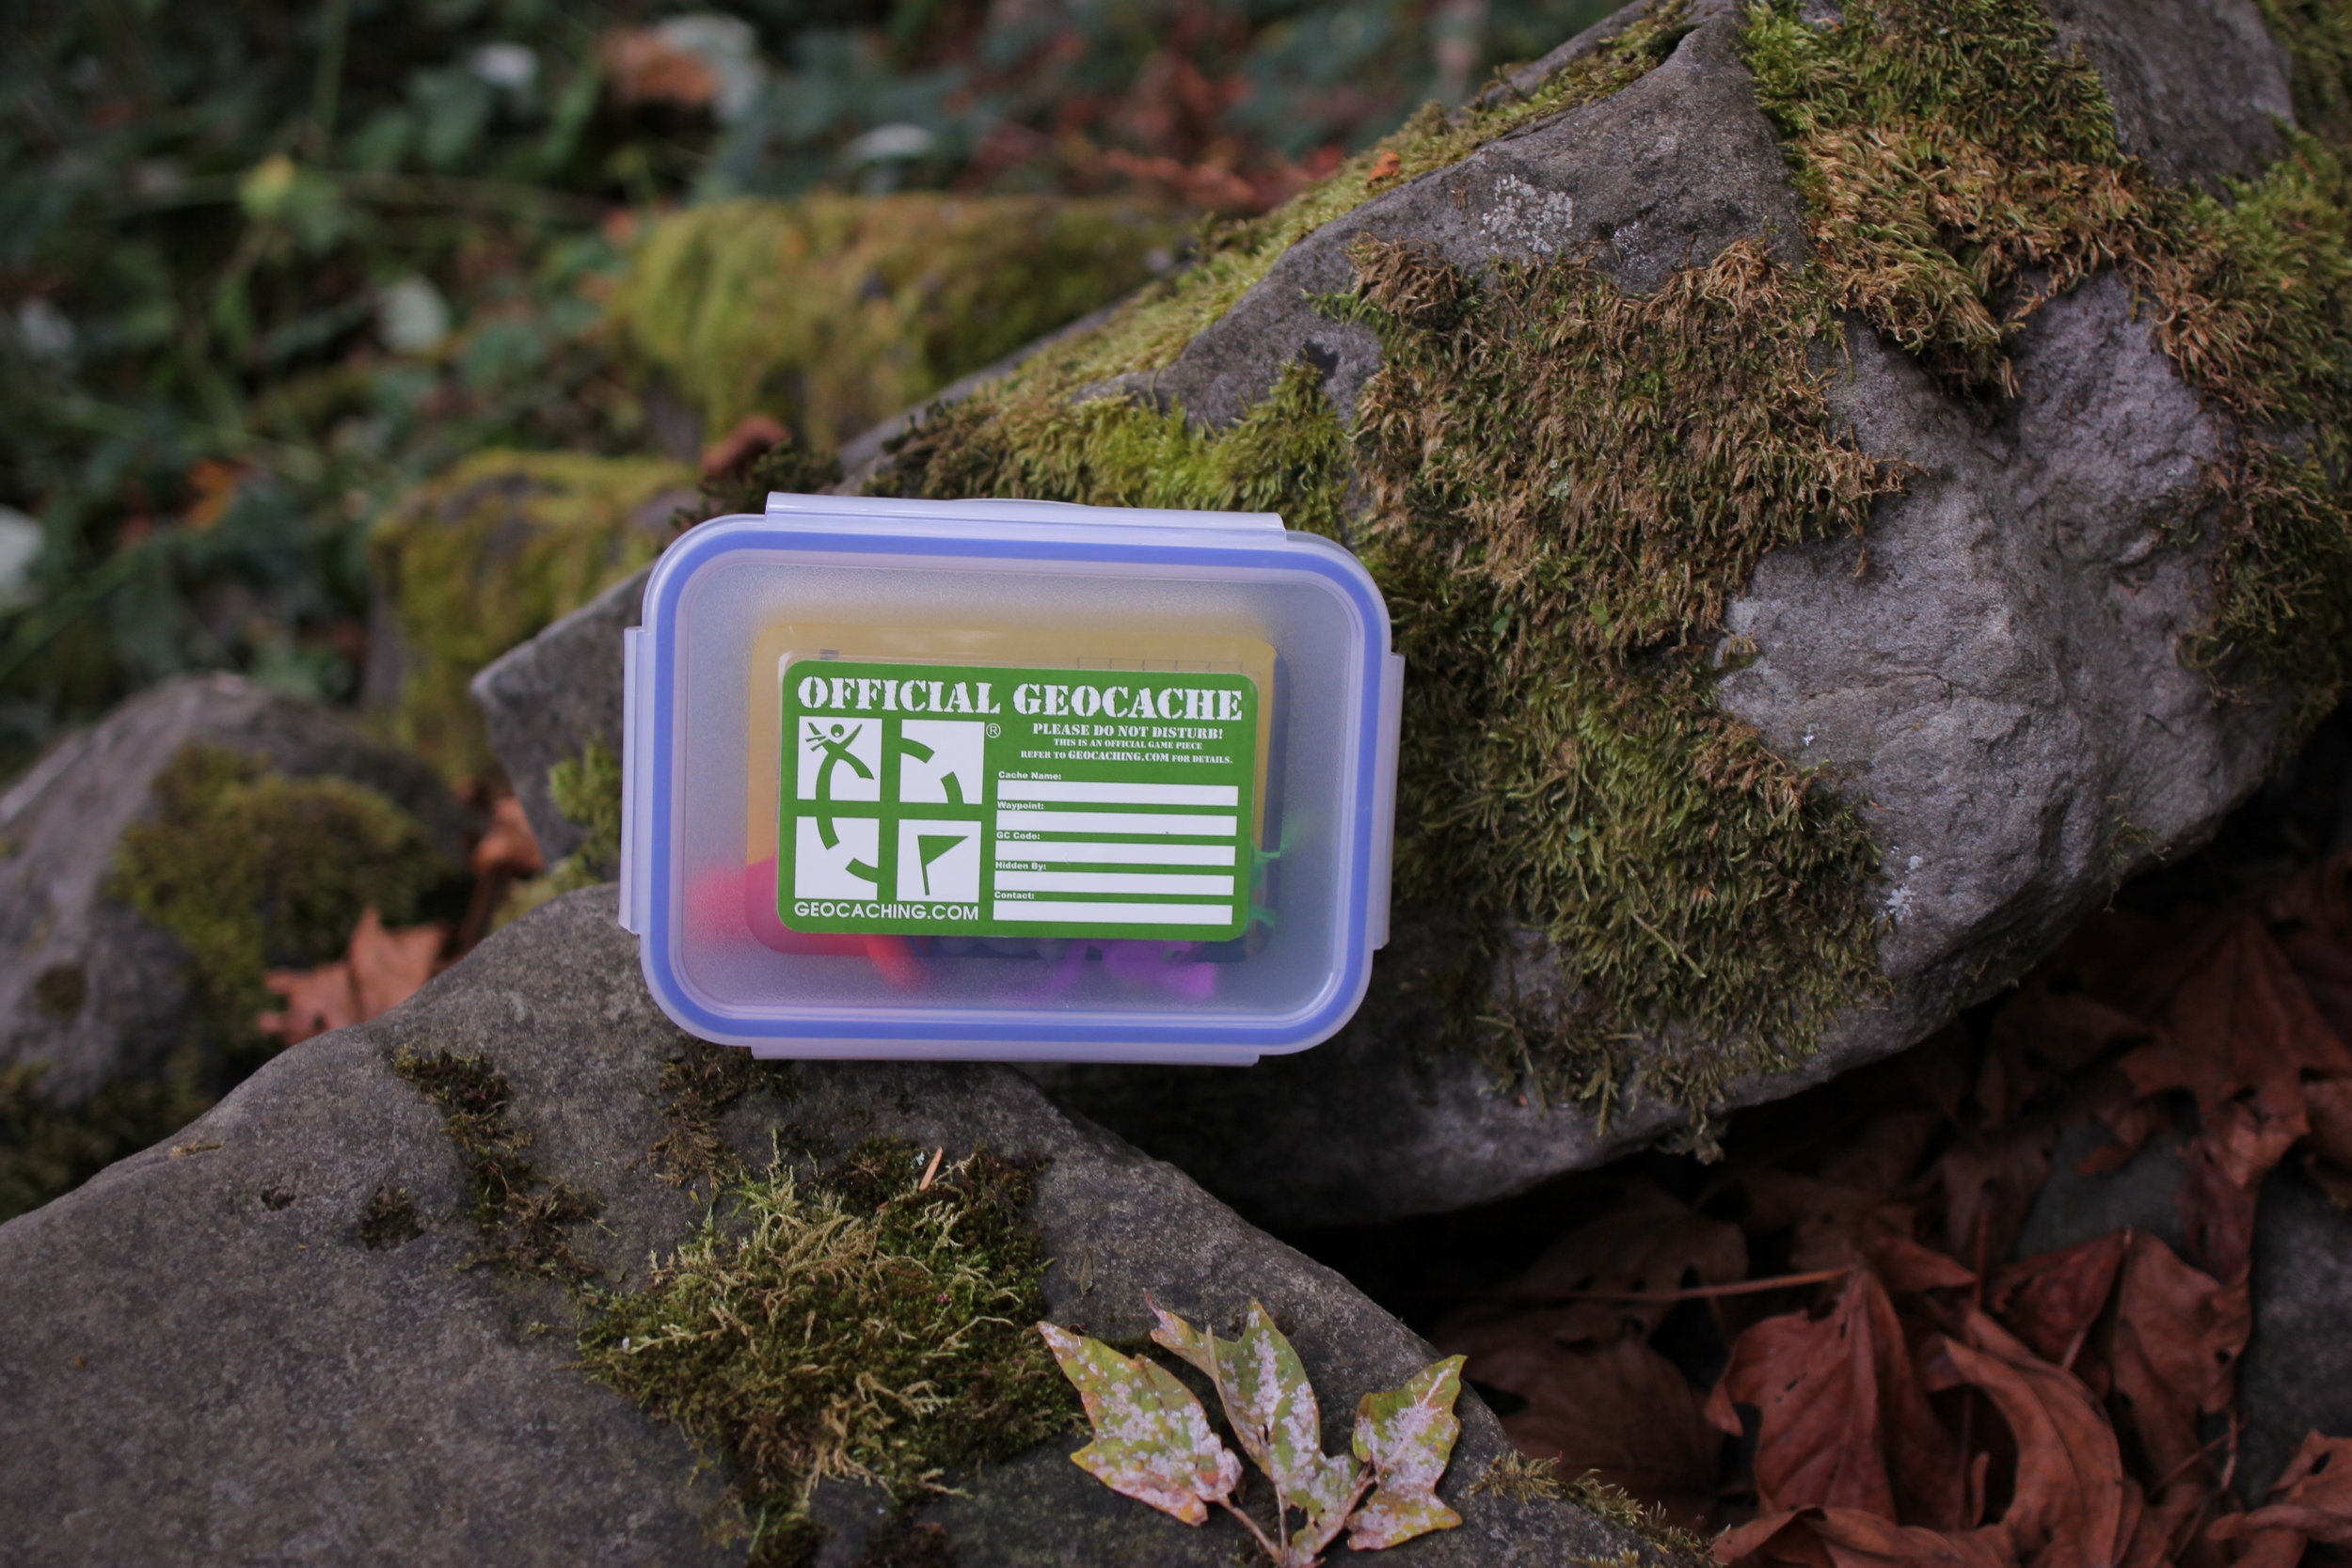 Geocachecontainer.JPG